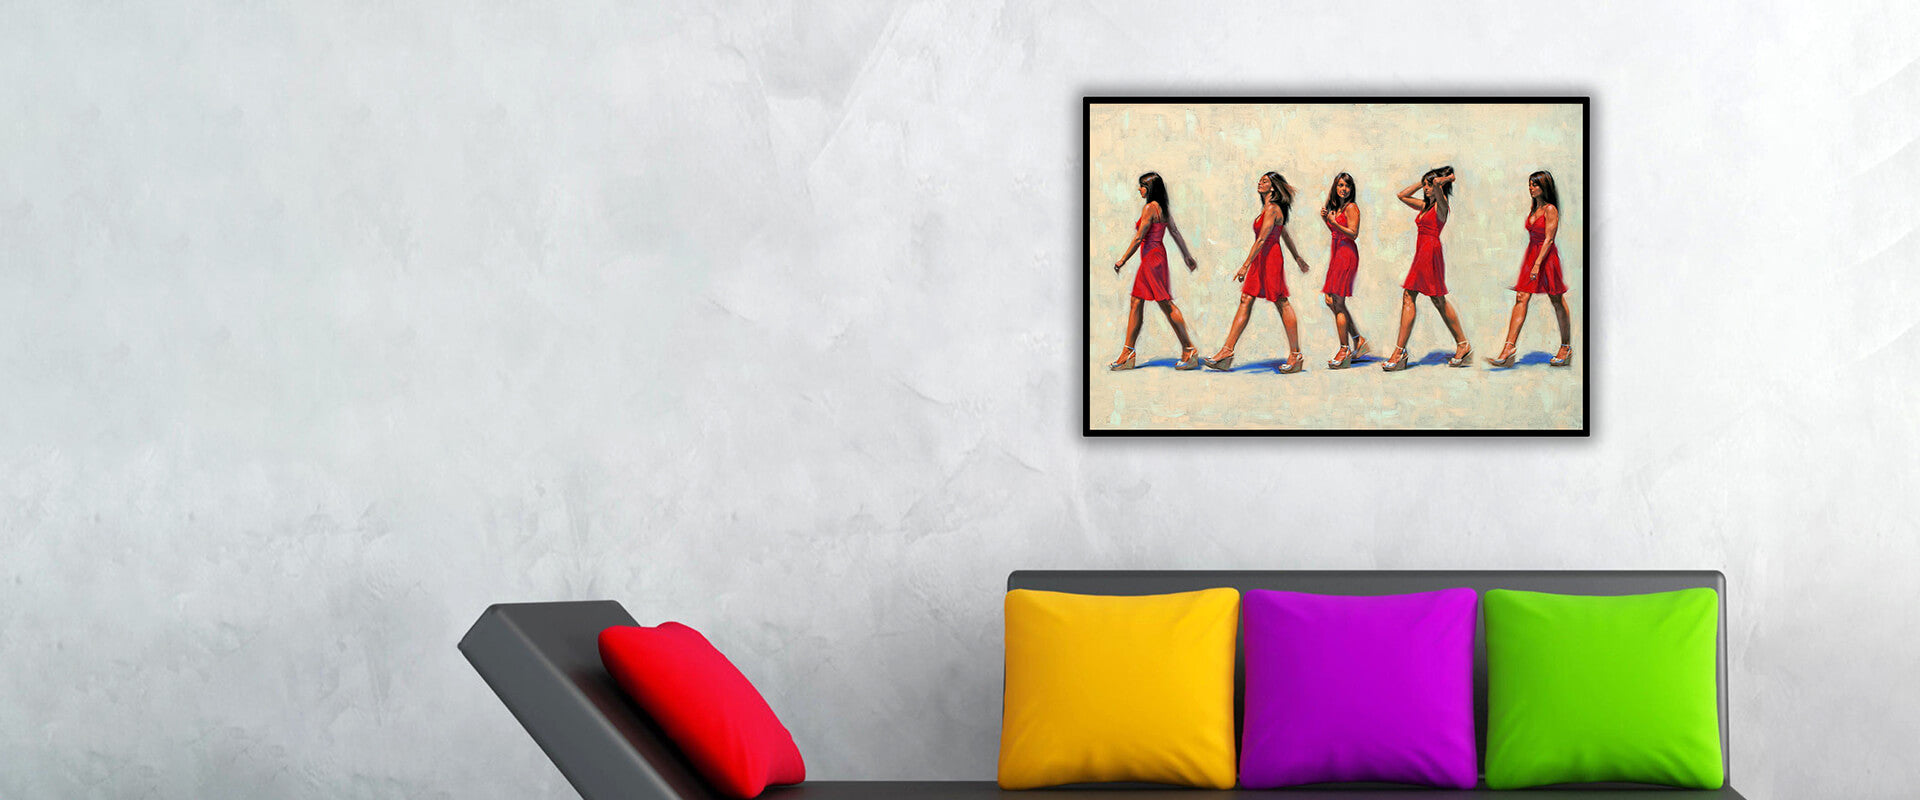 Posters — Best Sellers | Buy Posters, Frames, Canvas, Digital Art & Large Size Prints